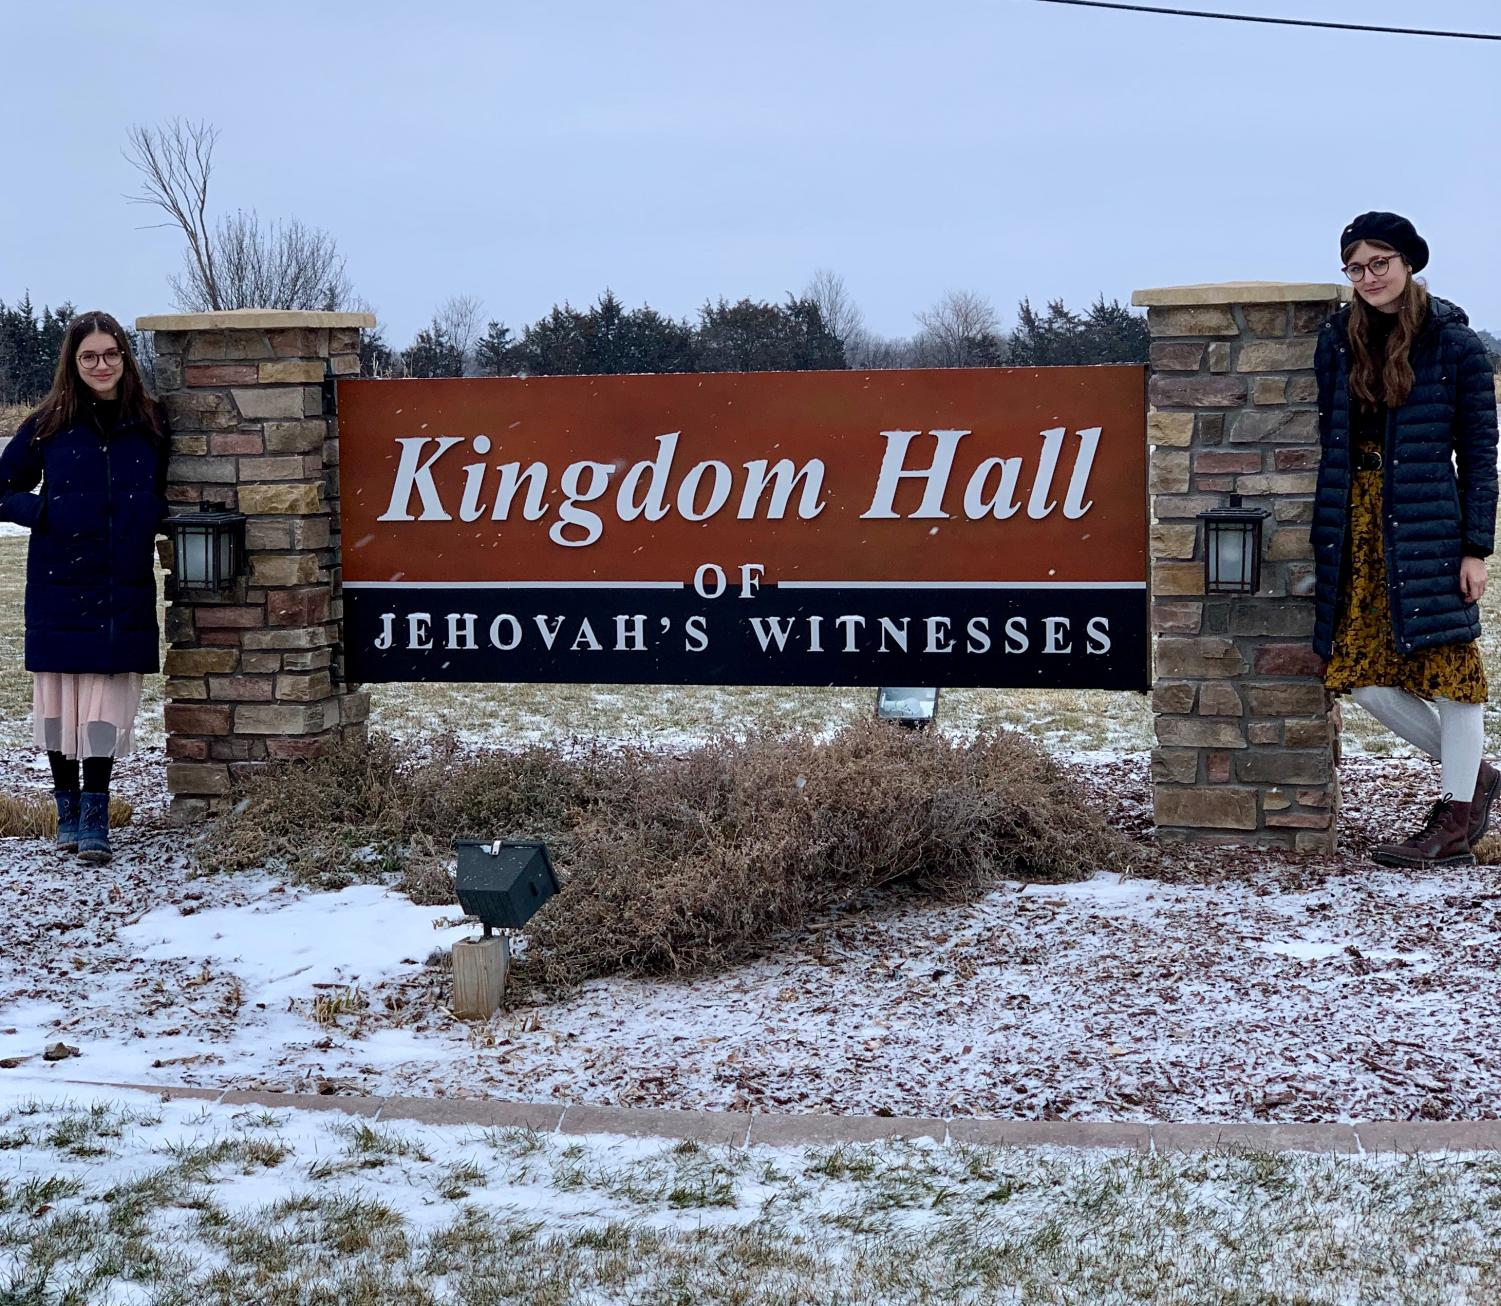 Sophmores Selah Clasen and Madison Grayden pose at a sign on Saturday December 29 just outside of the Kingdom Hall where their community comes together to share their faith.